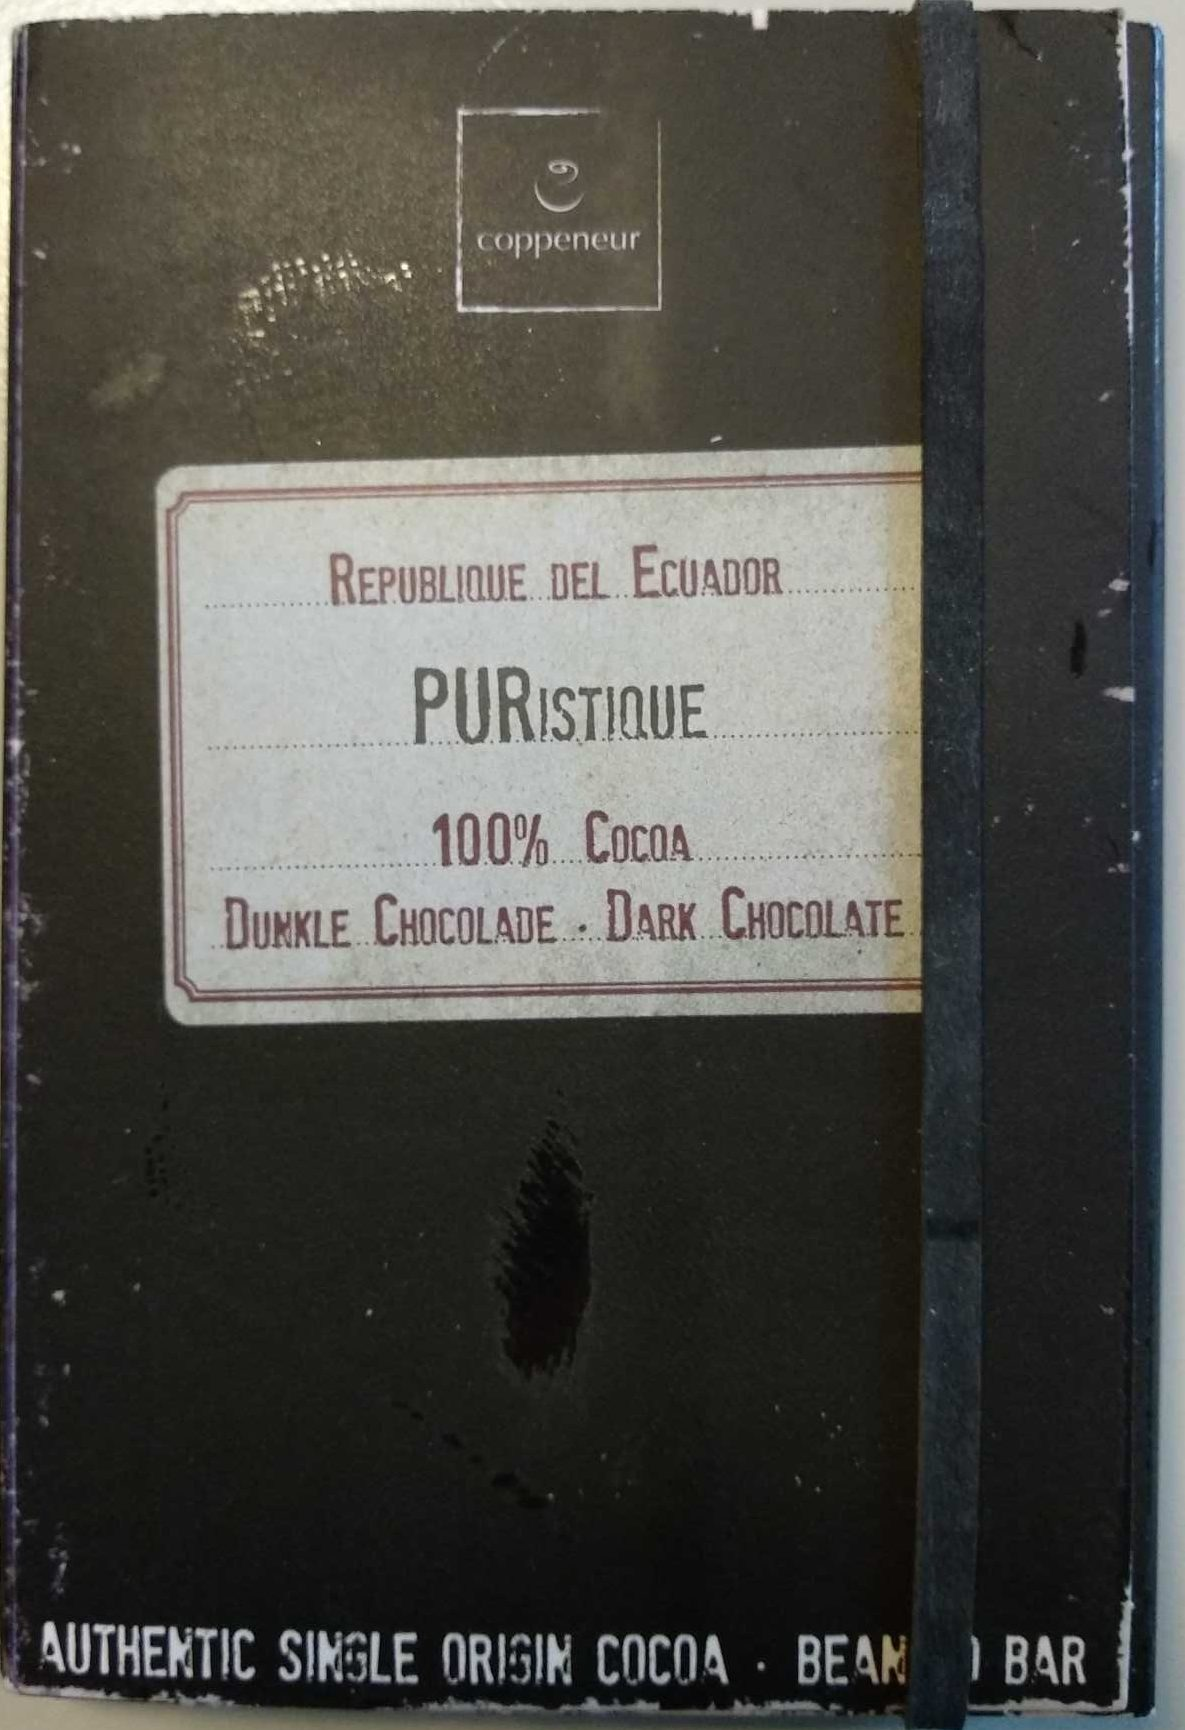 Republica del Ecuador • PURistique • 100% Cocoa - Product - de